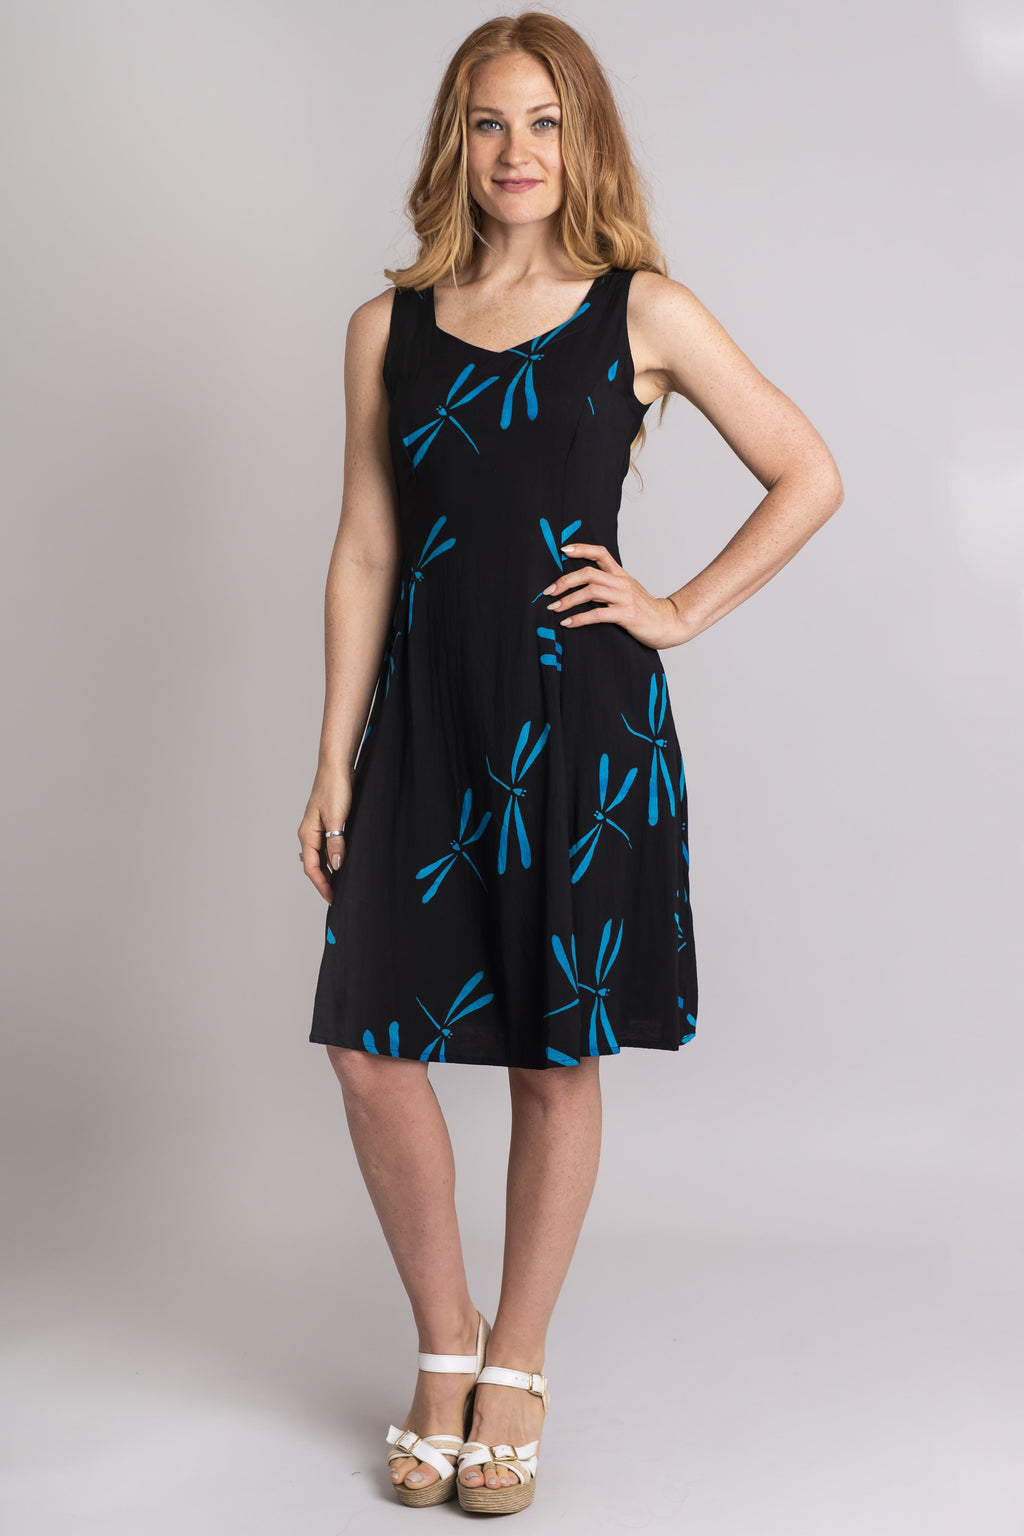 Sweet Sara Dress, Black/Turq Dragonfly, Viscose - Blue Sky Clothing Co